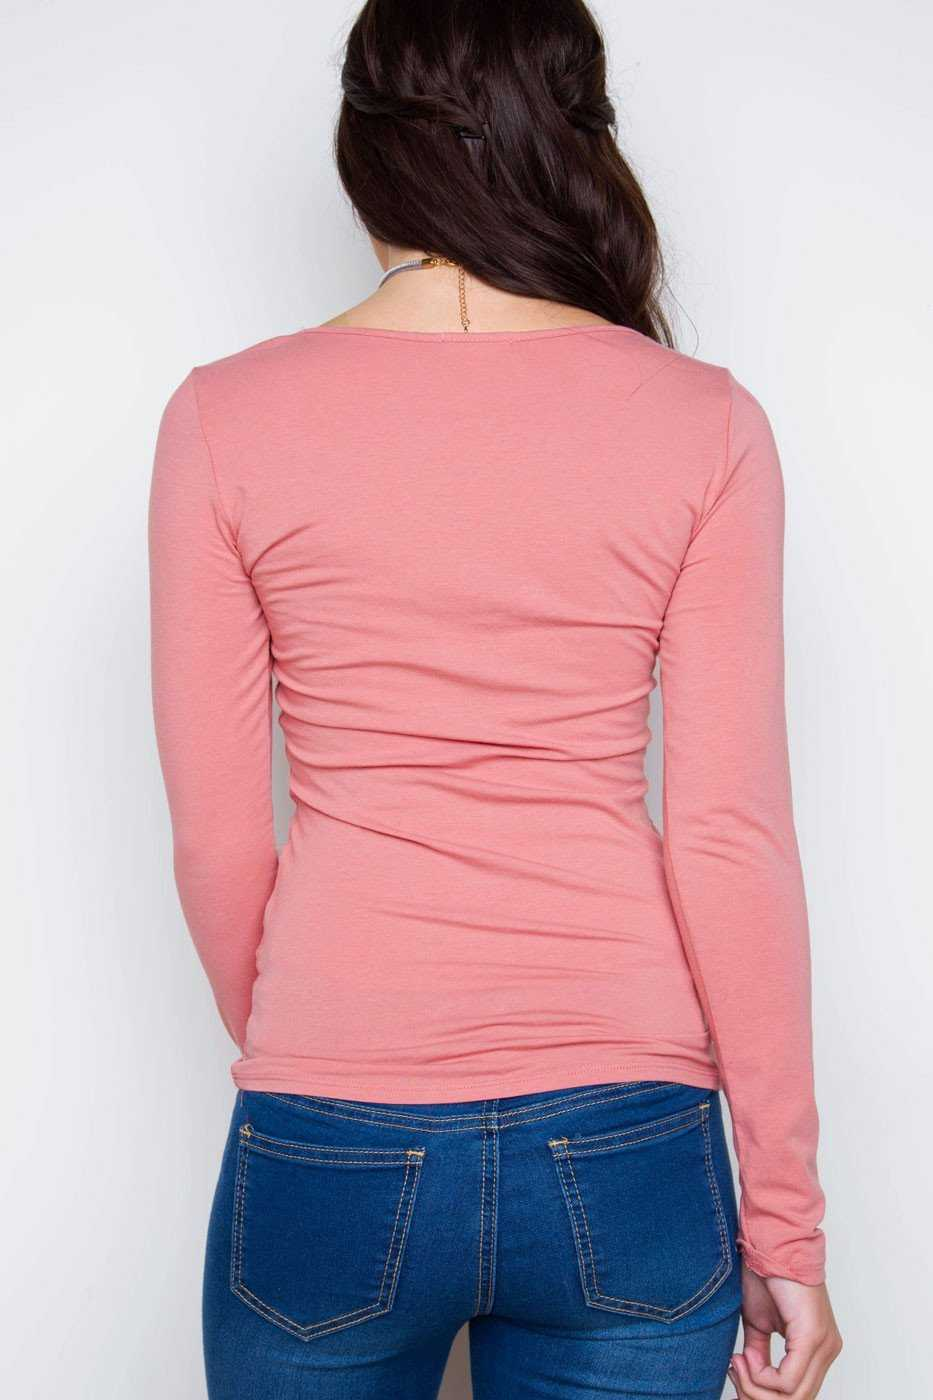 Tops - From The Heart Crisscross Top - Dusty Mauve